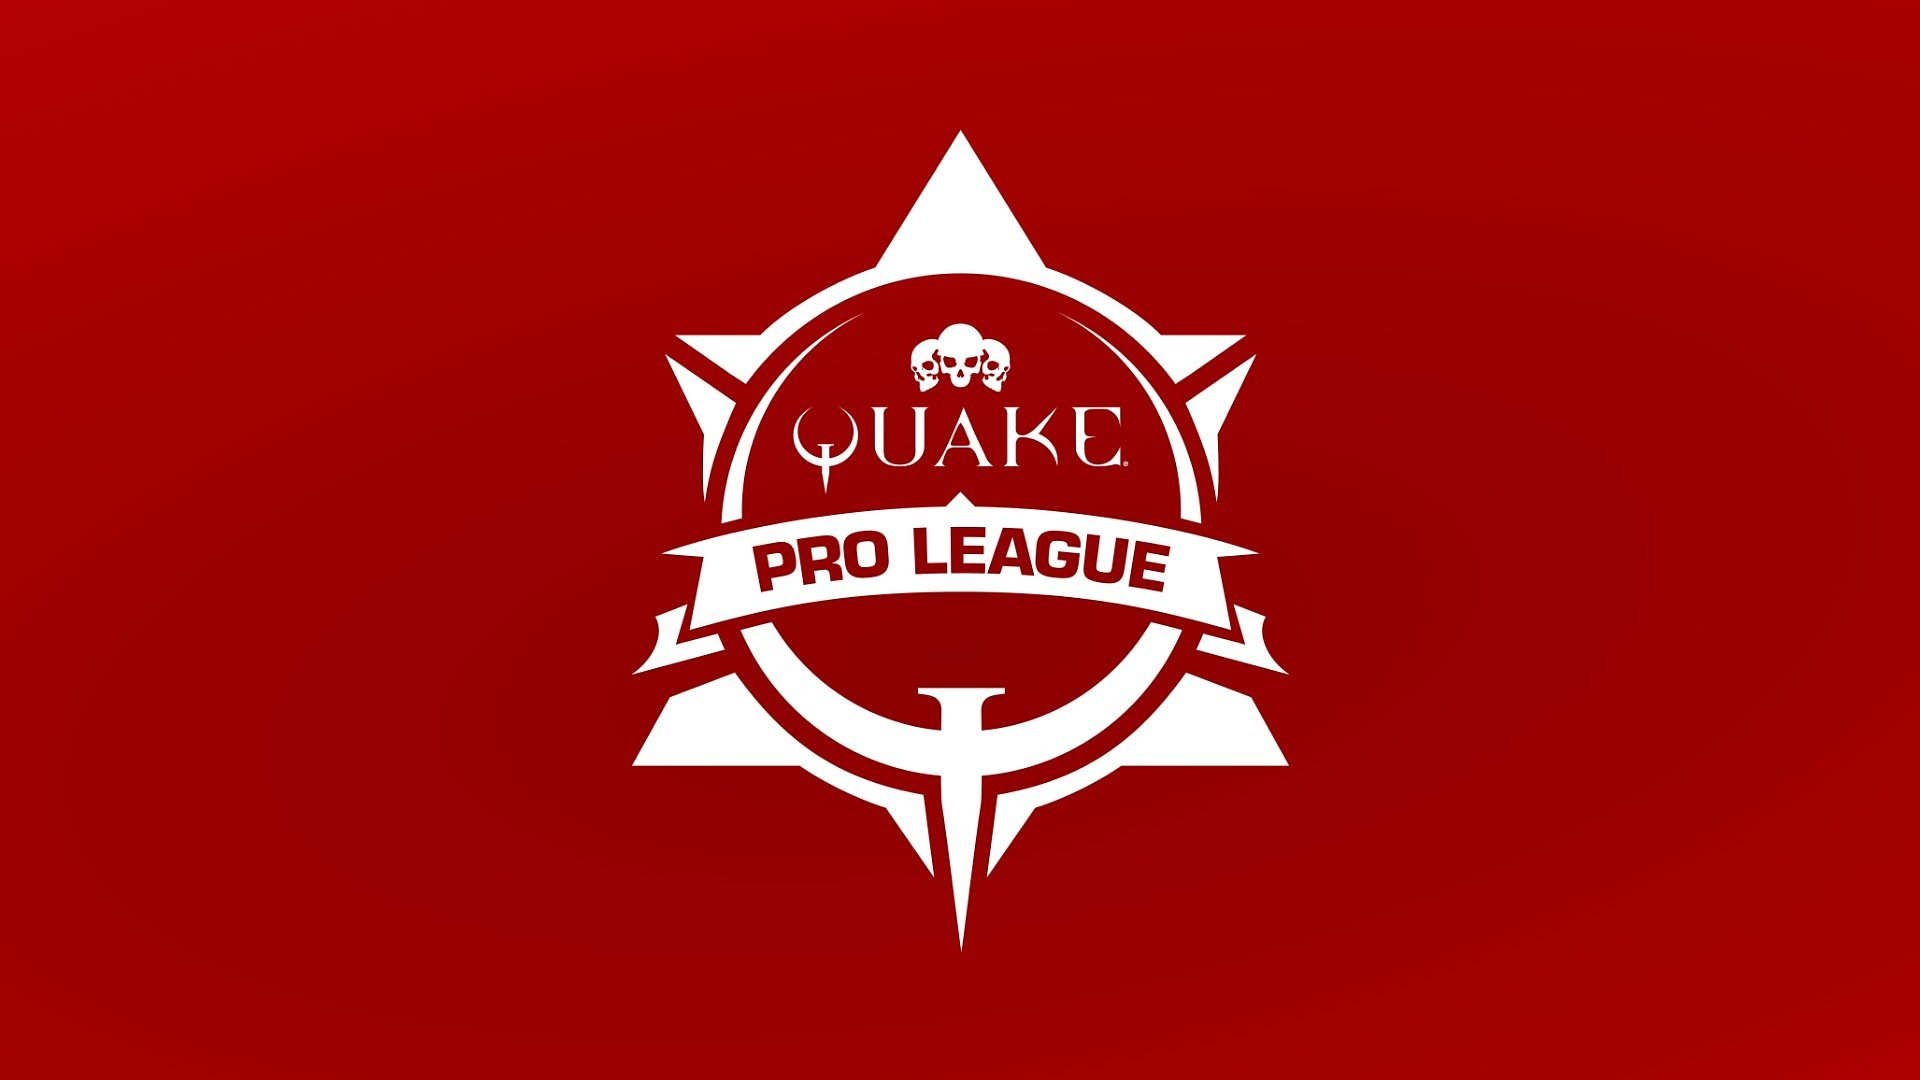 2020 – 2021 Quake Pro League presented by PGL